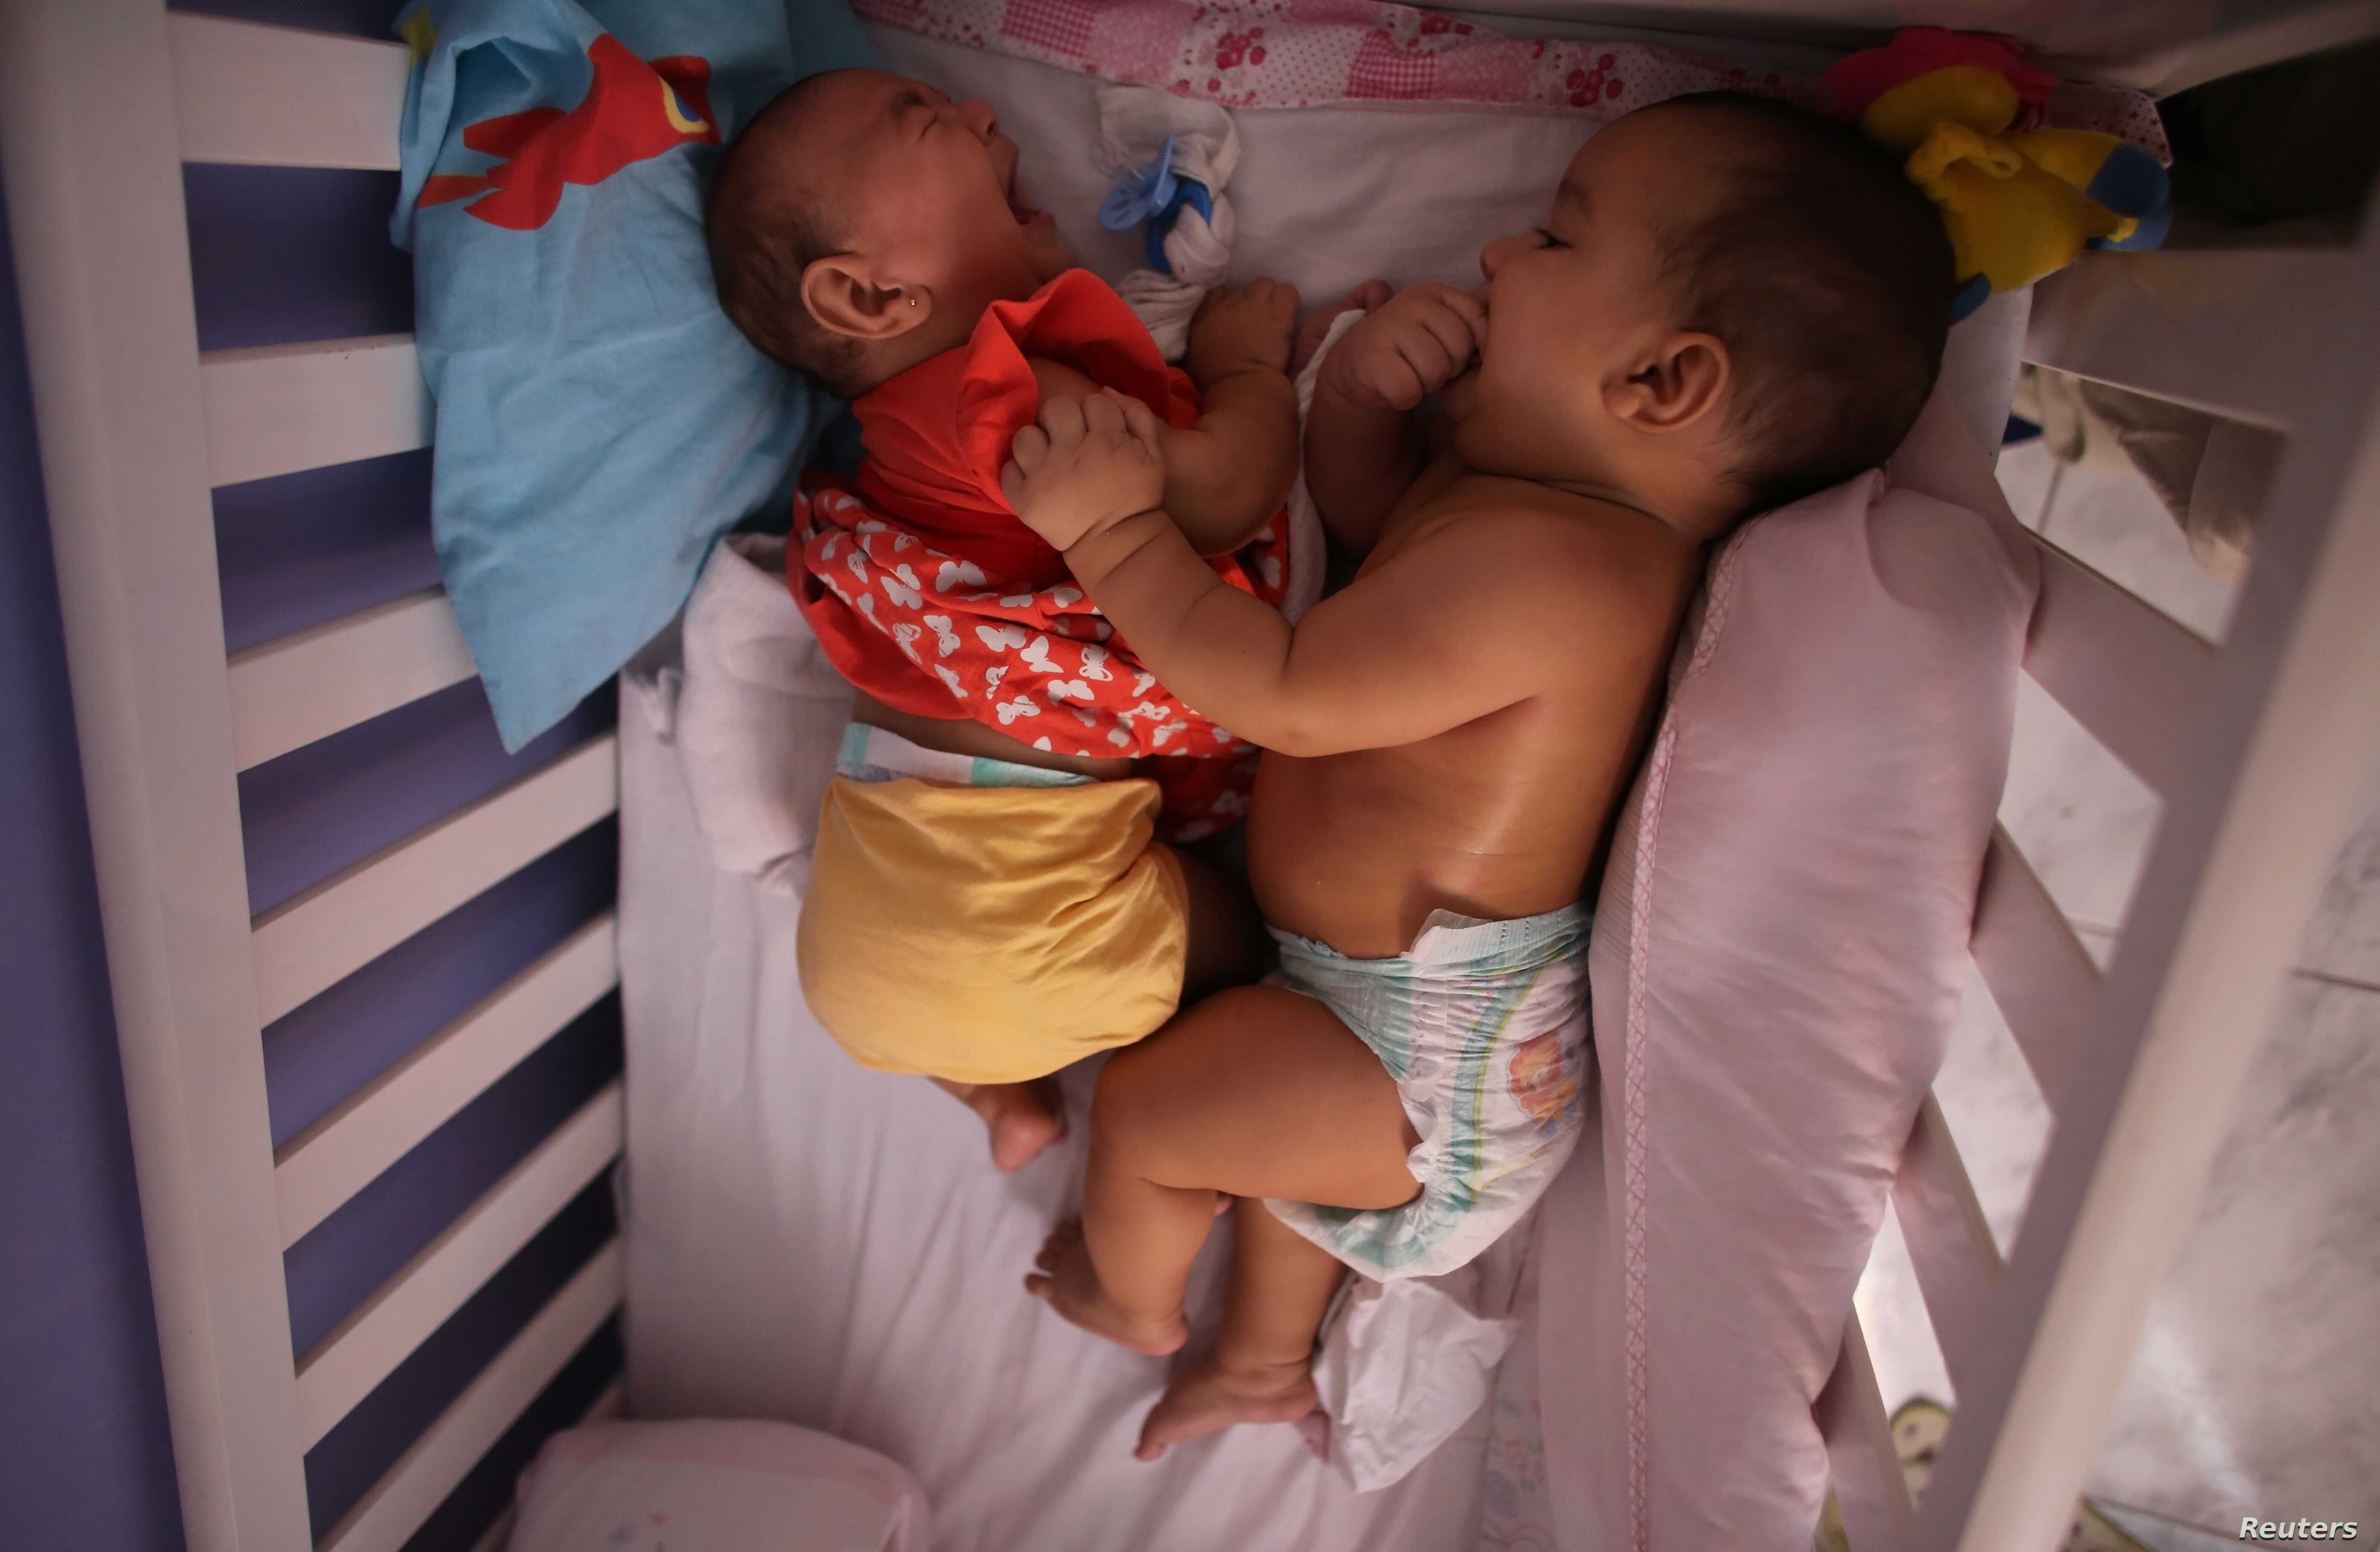 Five-month-old twins, Laura (L) and Lucas lie in their bed at their house in Santos, Sao Paulo state, Brazi, April 20, 2016.